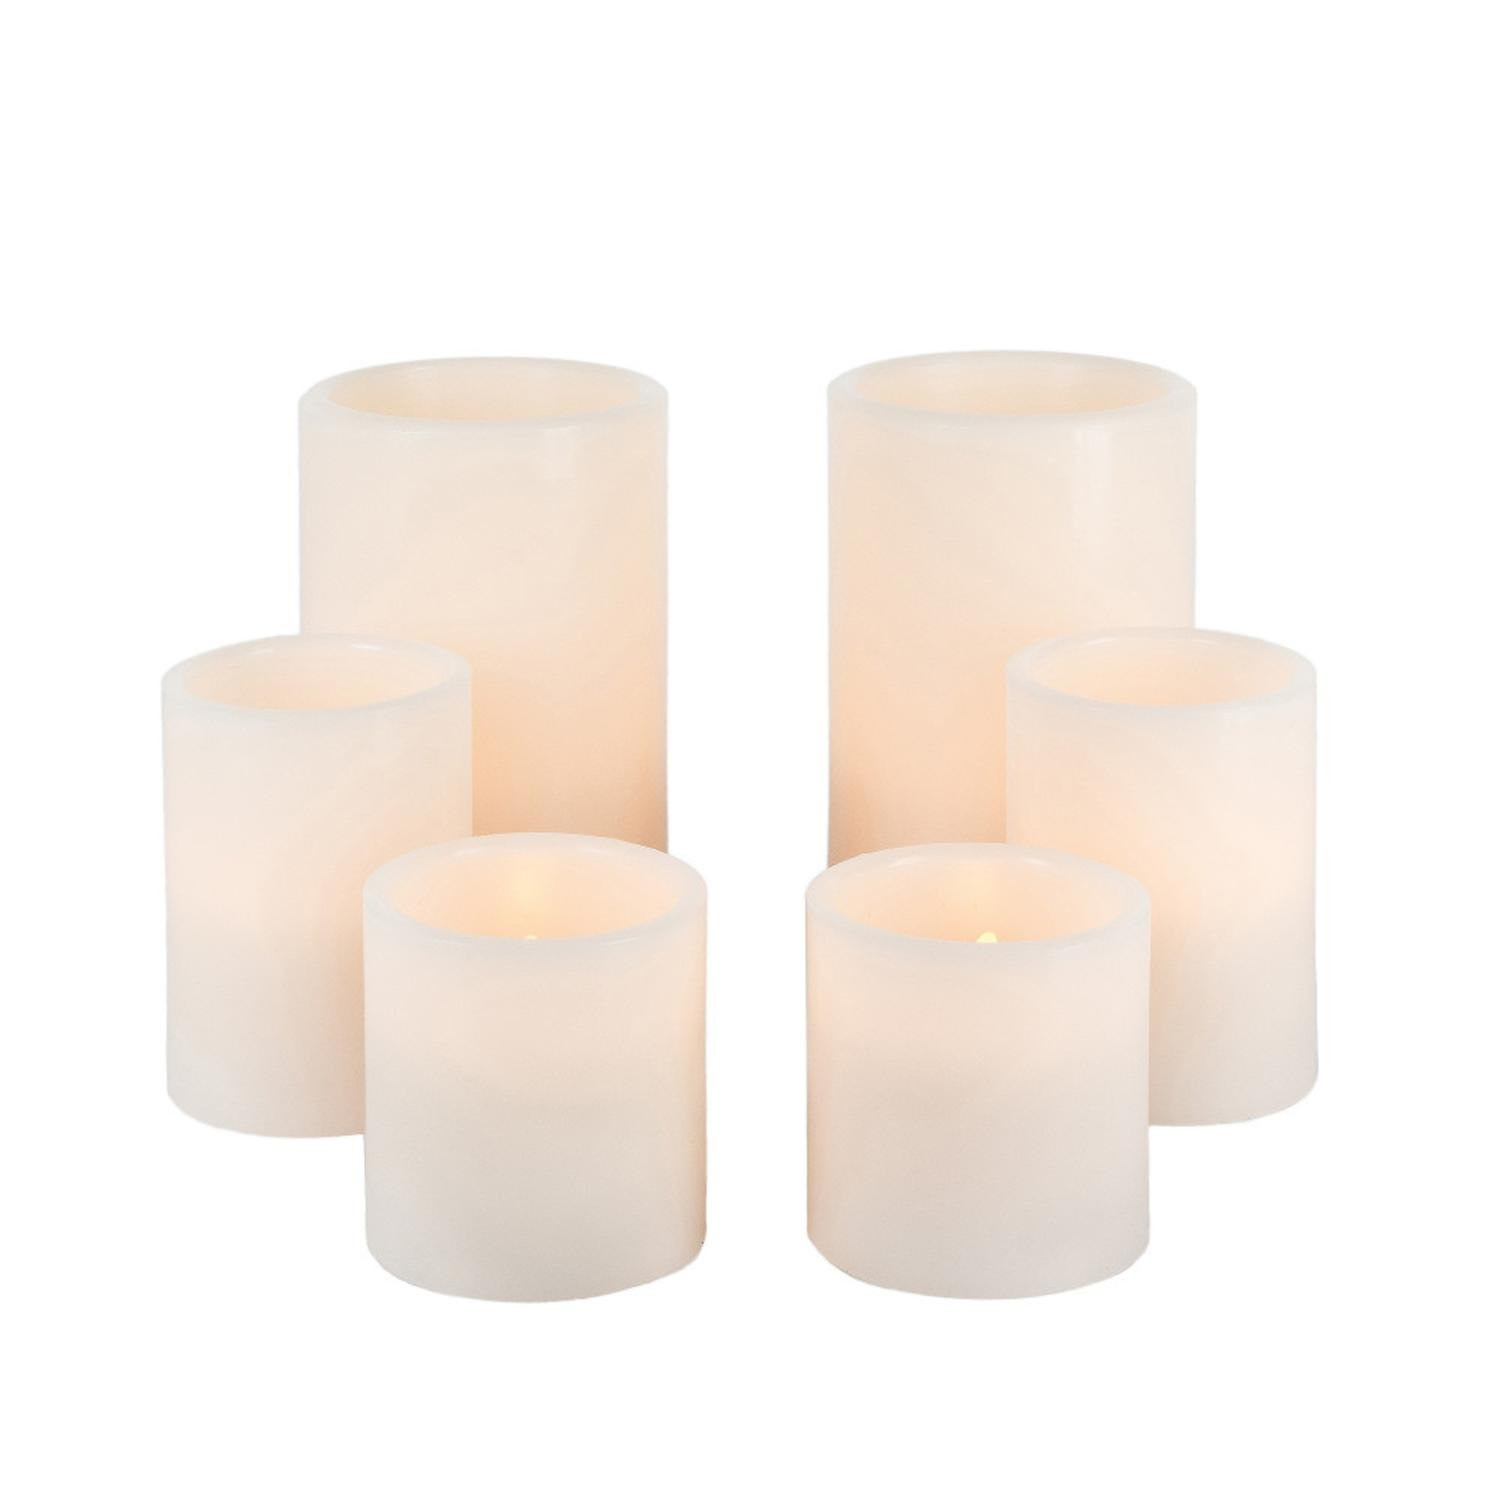 Diva At Home Set of 6 Bisque Colored Wax Decorative Warm White LED Candle Lights 6''